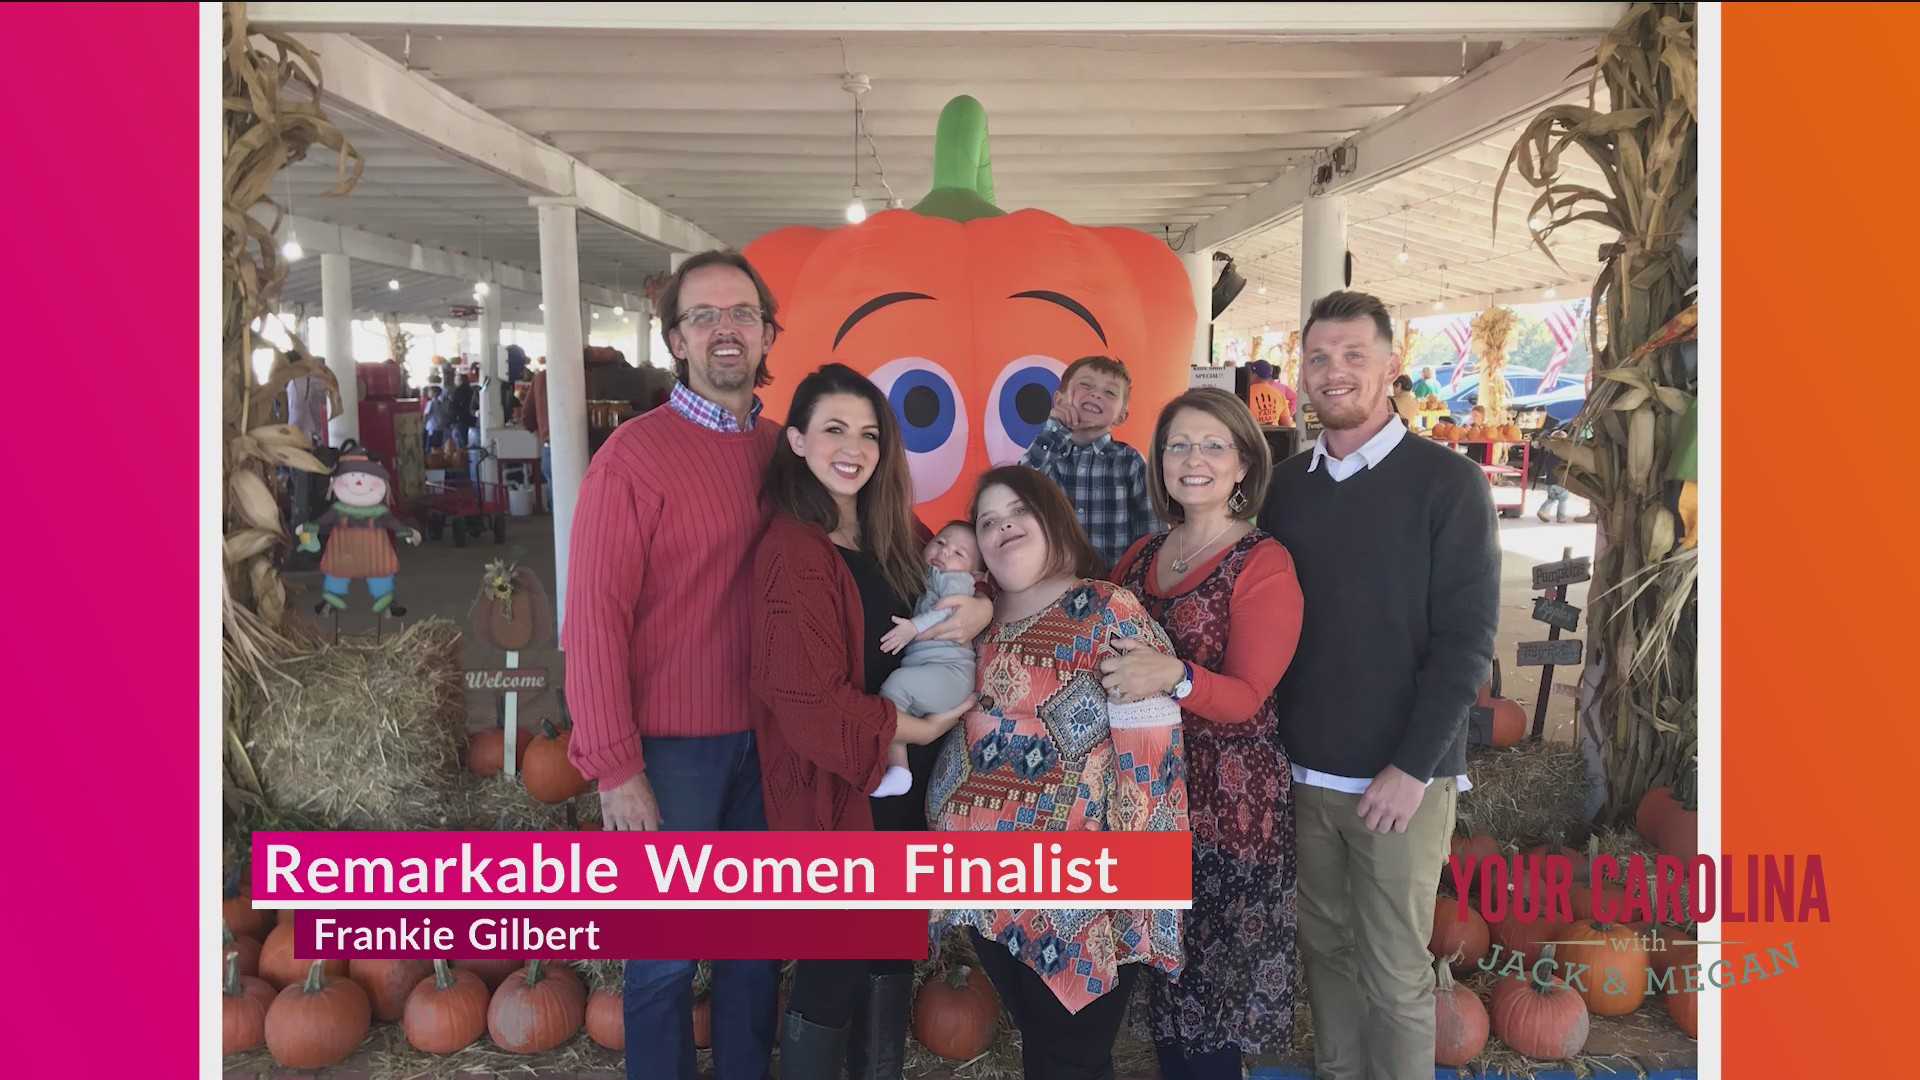 Meet Remarkable Women Finalist Nominee Frankie Gilbert